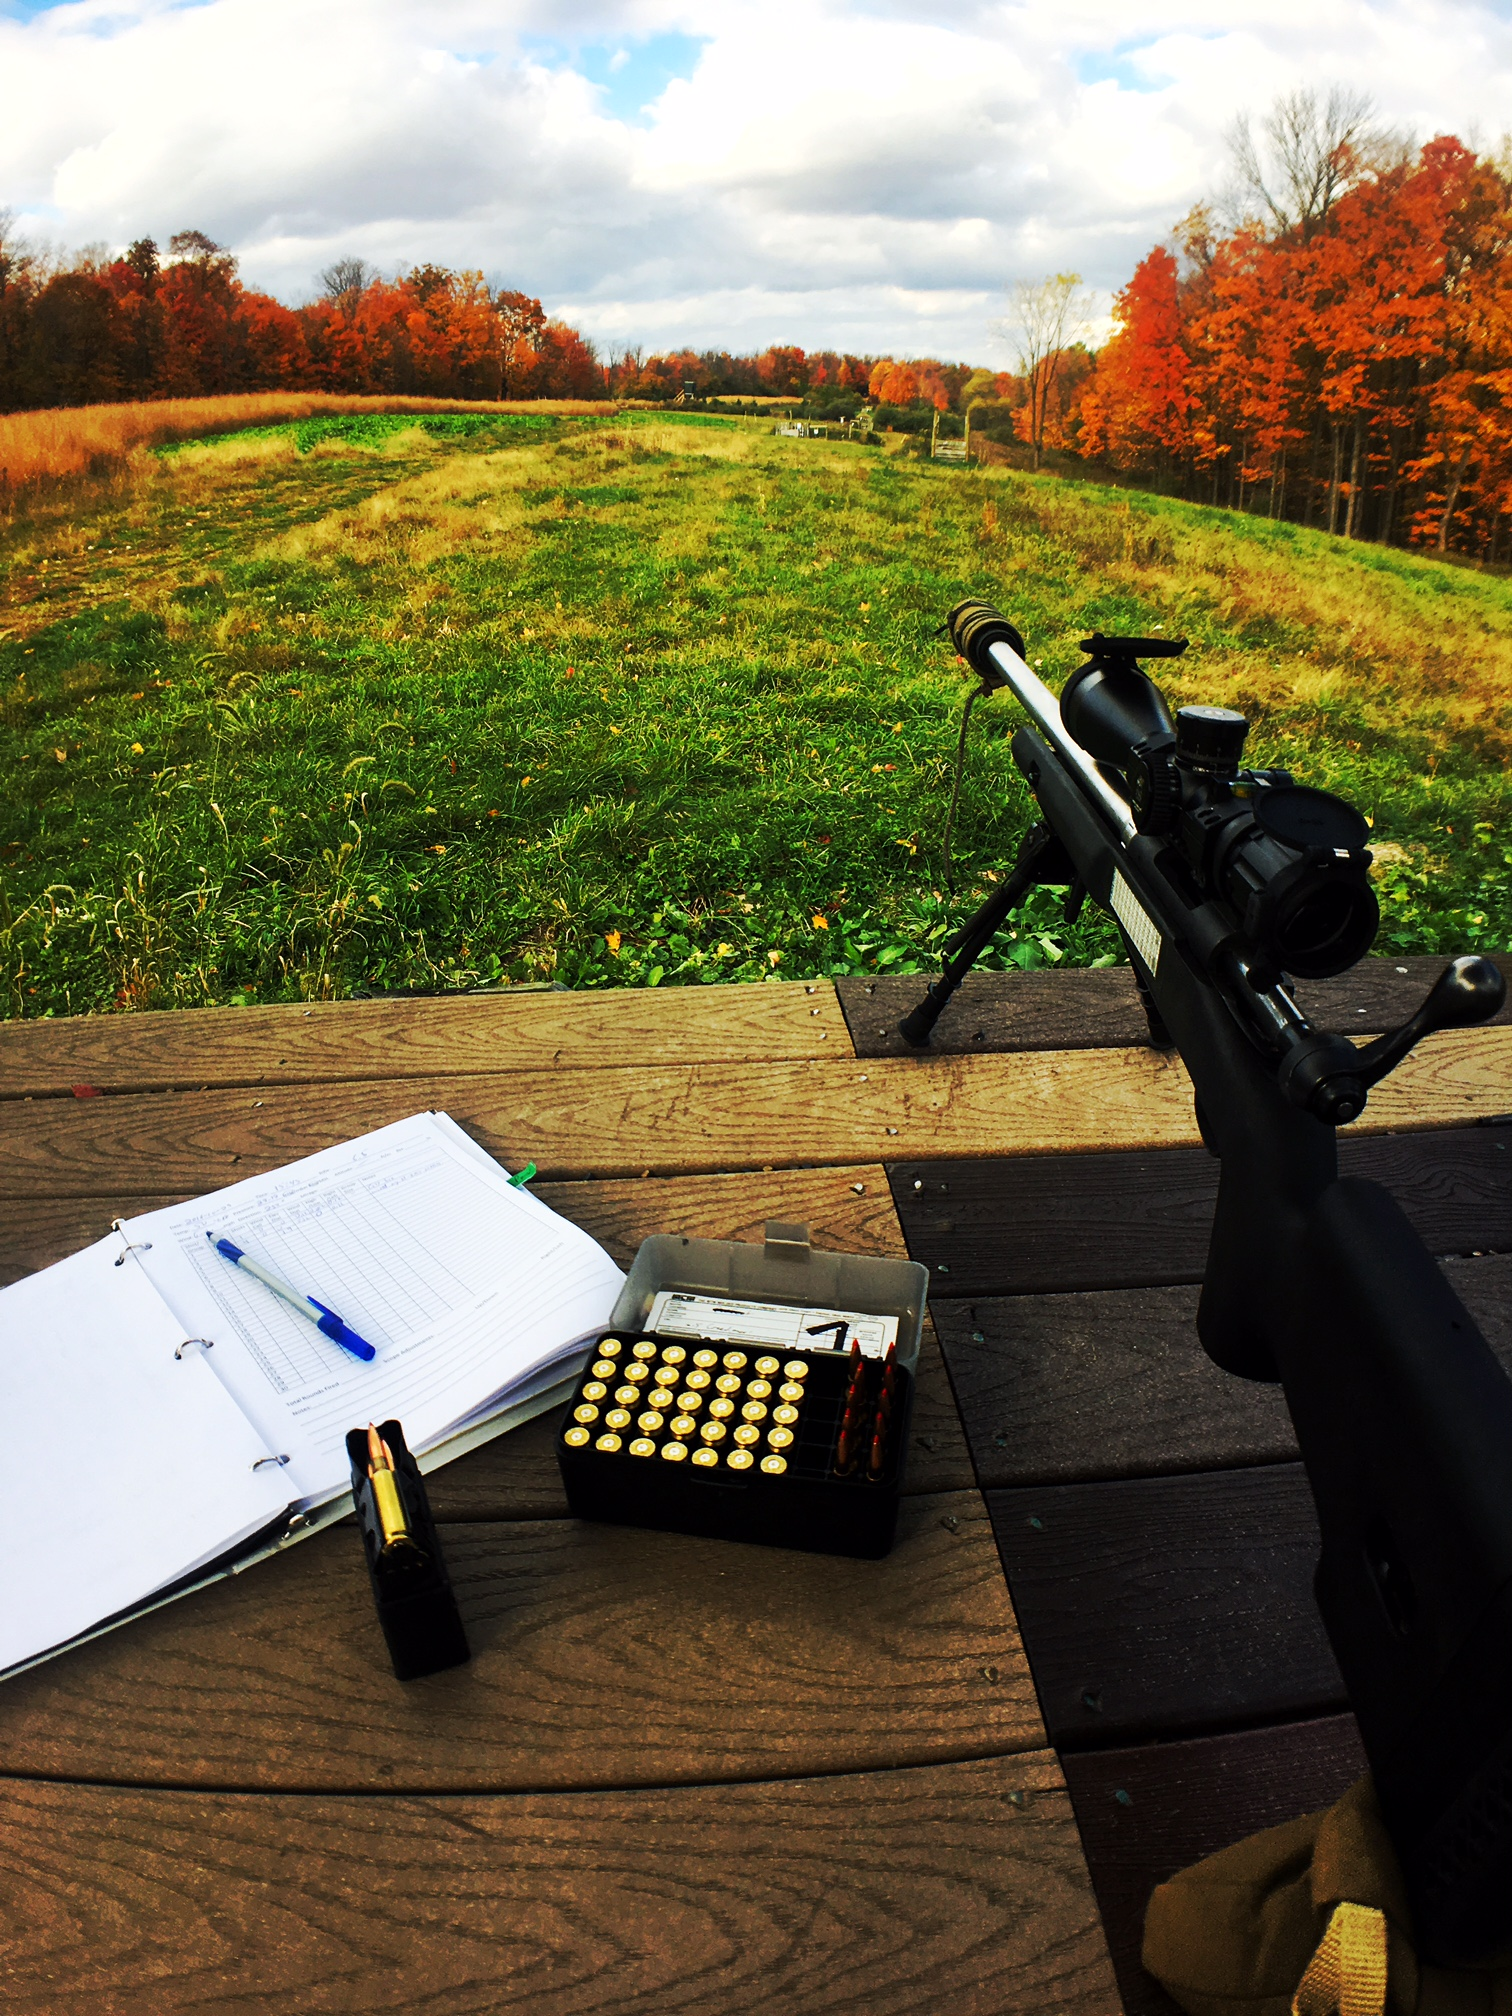 The logbook is one of the most critical pieces of the long-range shooting puzzle. Without historical data to work from, you're starting from scratch every time.